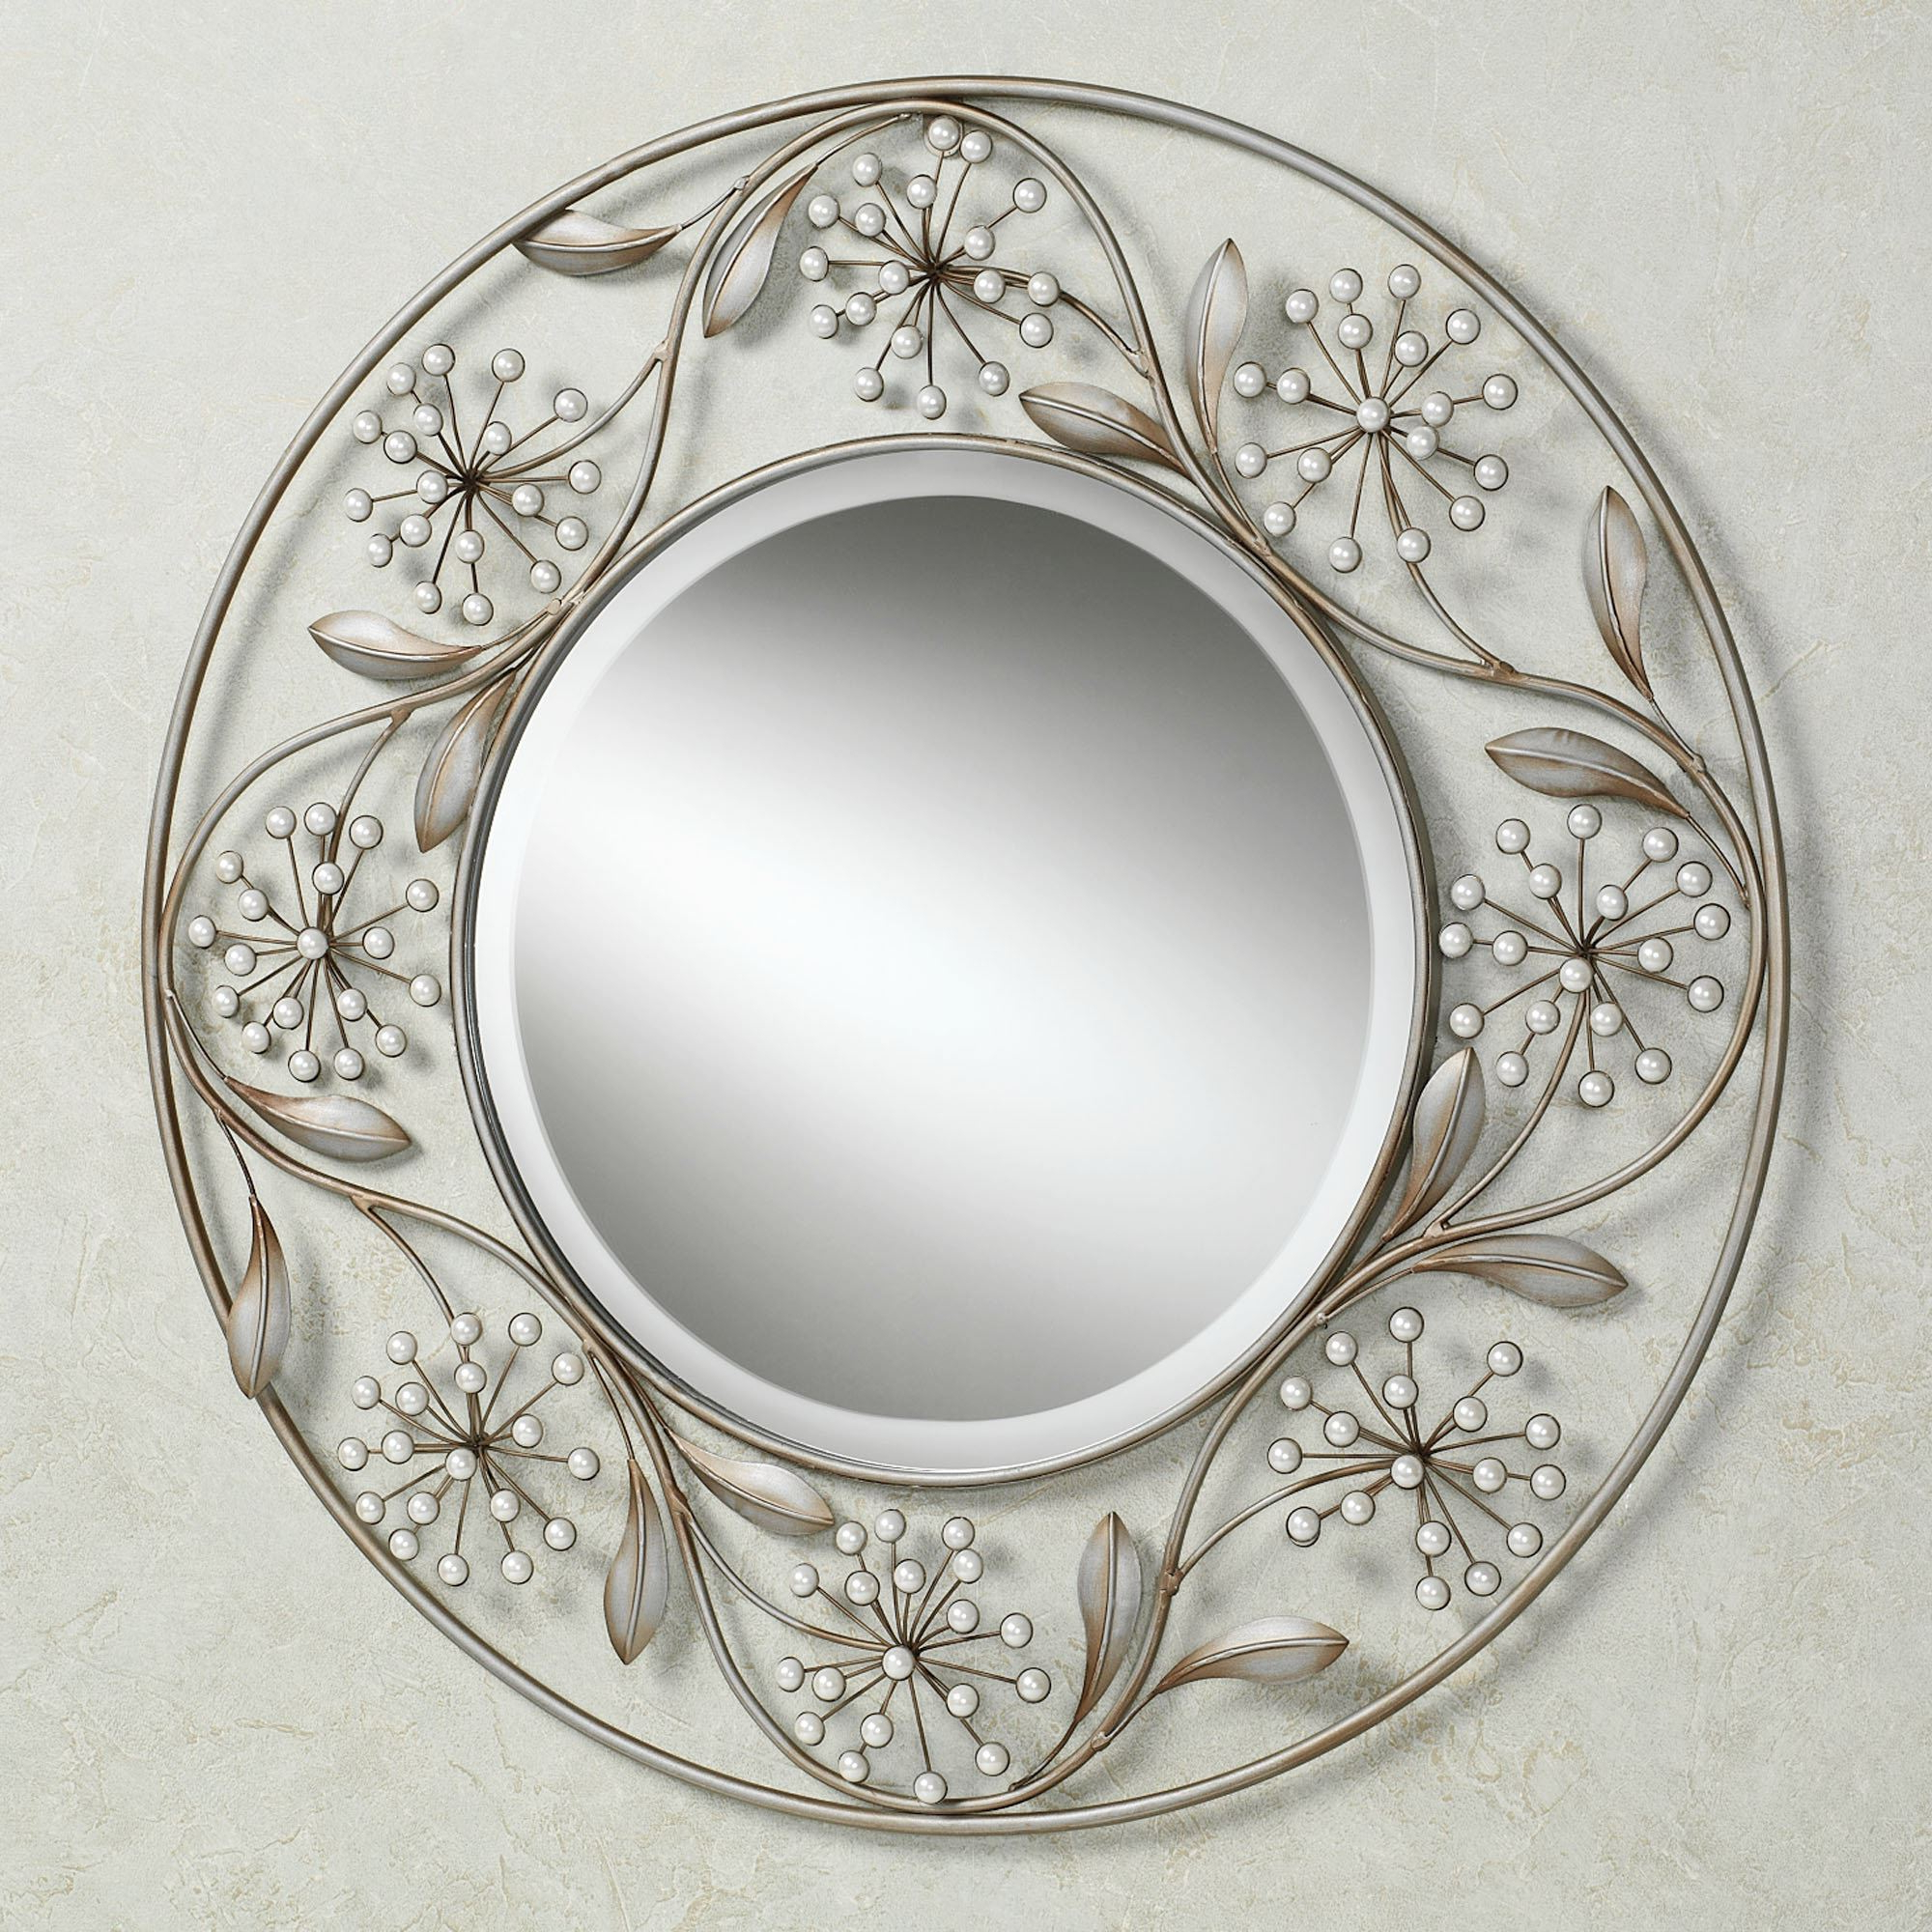 Circular Wall Mirrors With Regard To Current Pearlette Round Metal Wall Mirror (View 15 of 20)